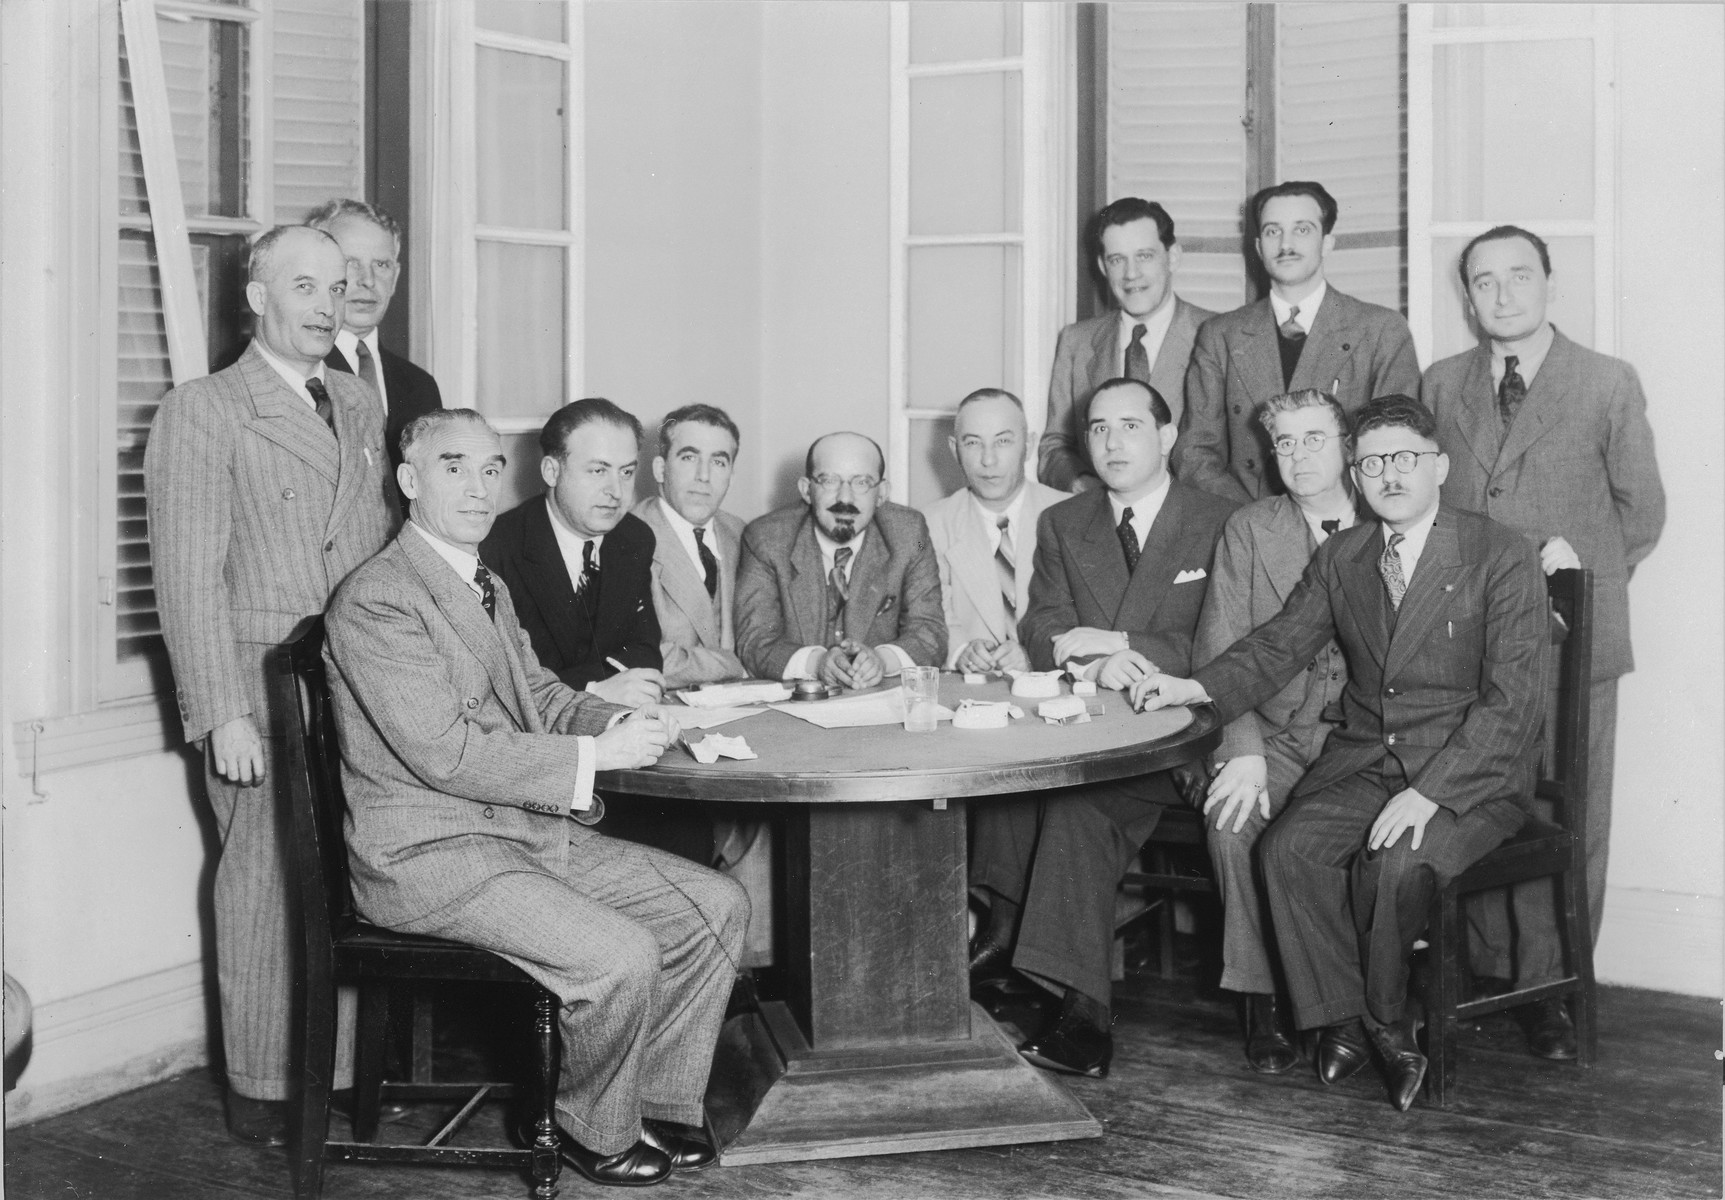 Group photograph of the leadership of the Kobe Jewish community.  Among those pictured are Anatole Ponevejsky (seated third from the left), Moise Moiseeff (fourth from the left), Anatole Ponve (fifth from the left), and Solomon Stolowy (standing, far left).